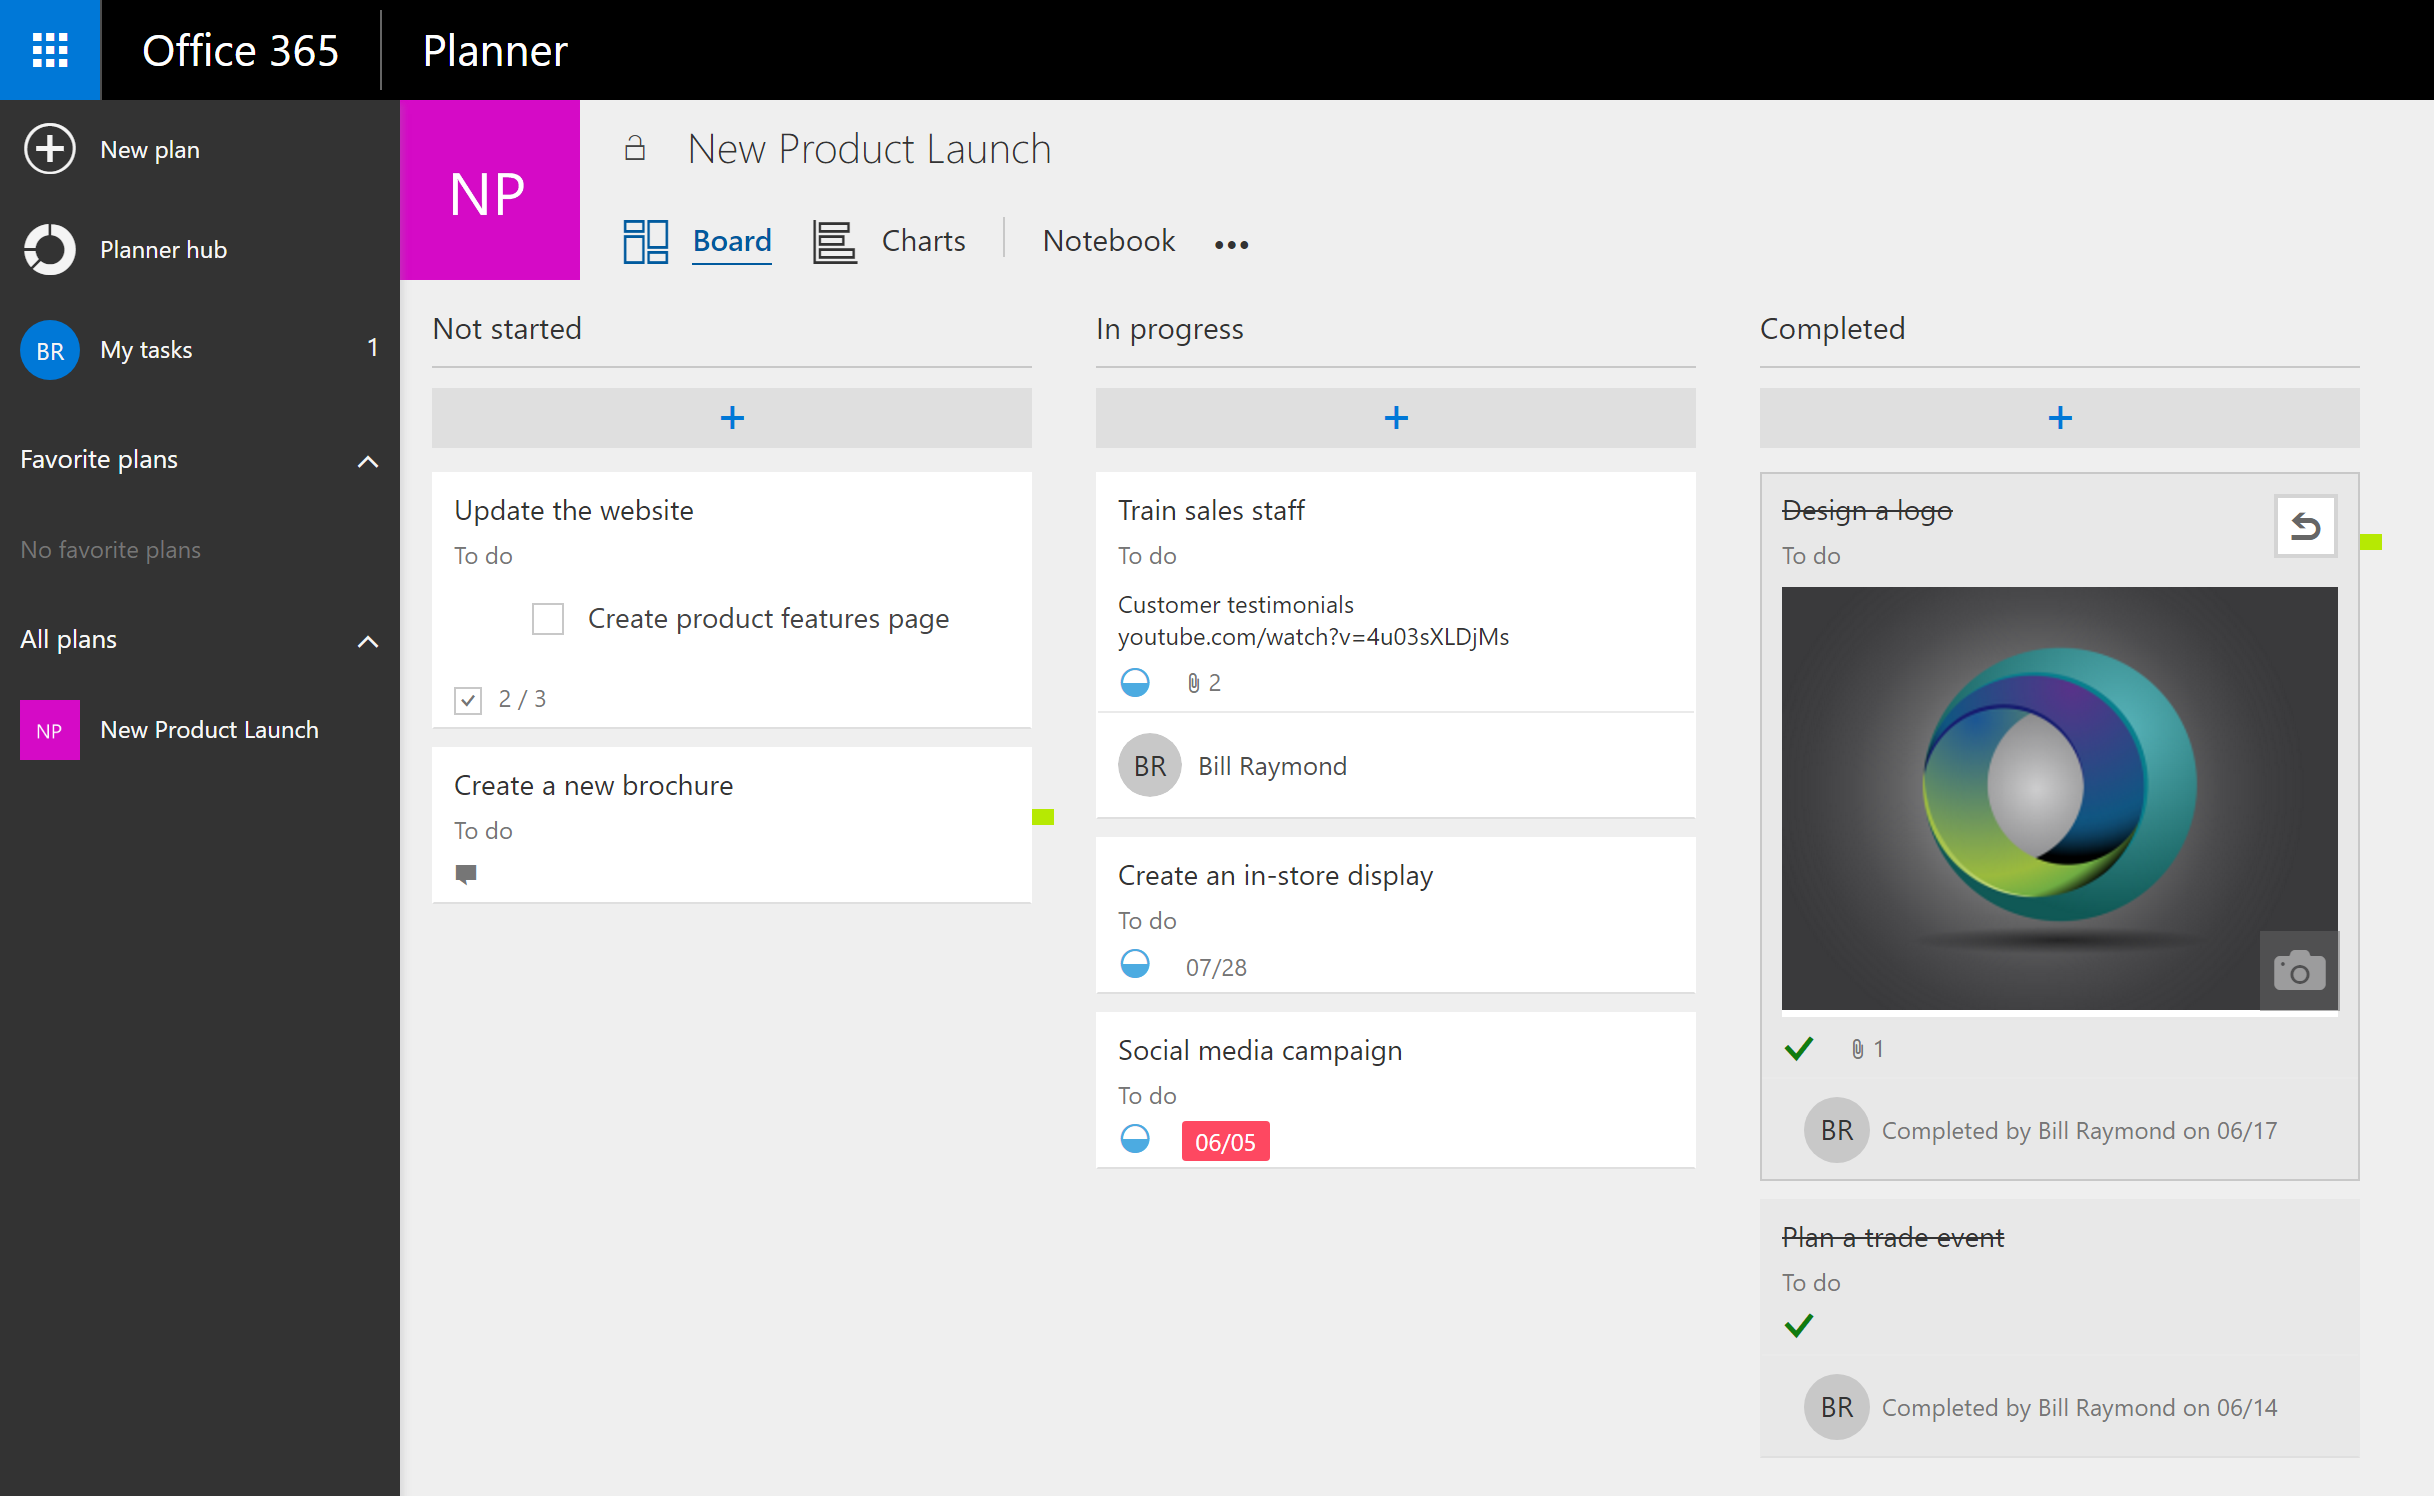 How to work with Microsoft Planner in an Agile environment